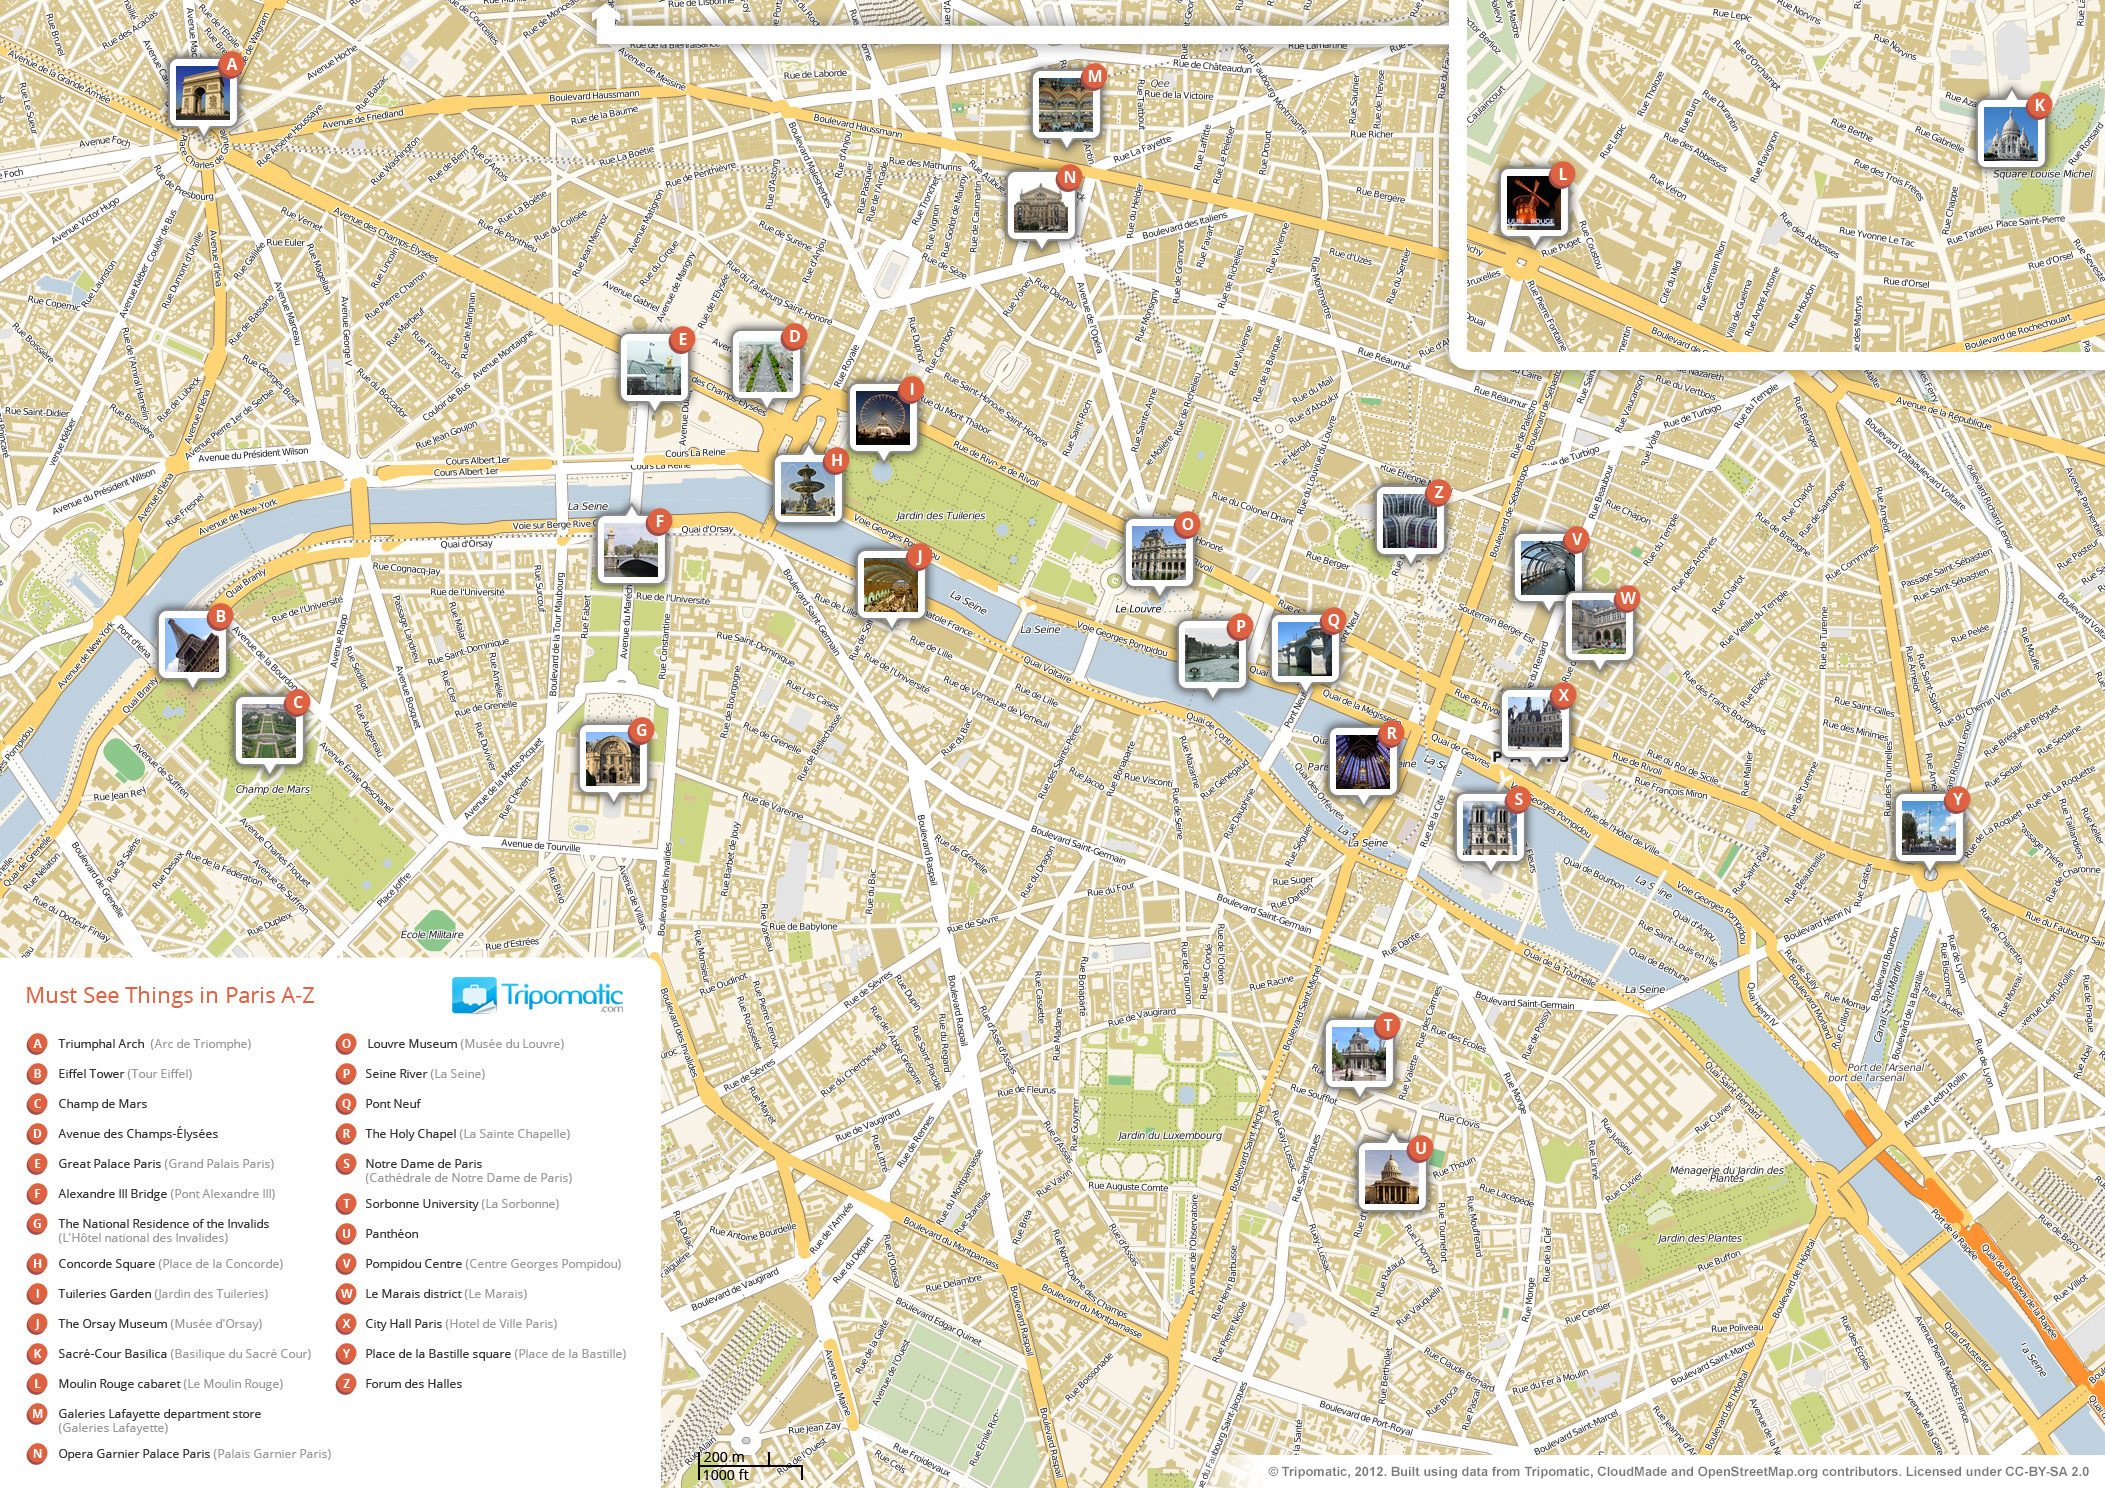 Datei:Paris printable tourist attractions map.jpg – Wiktionary